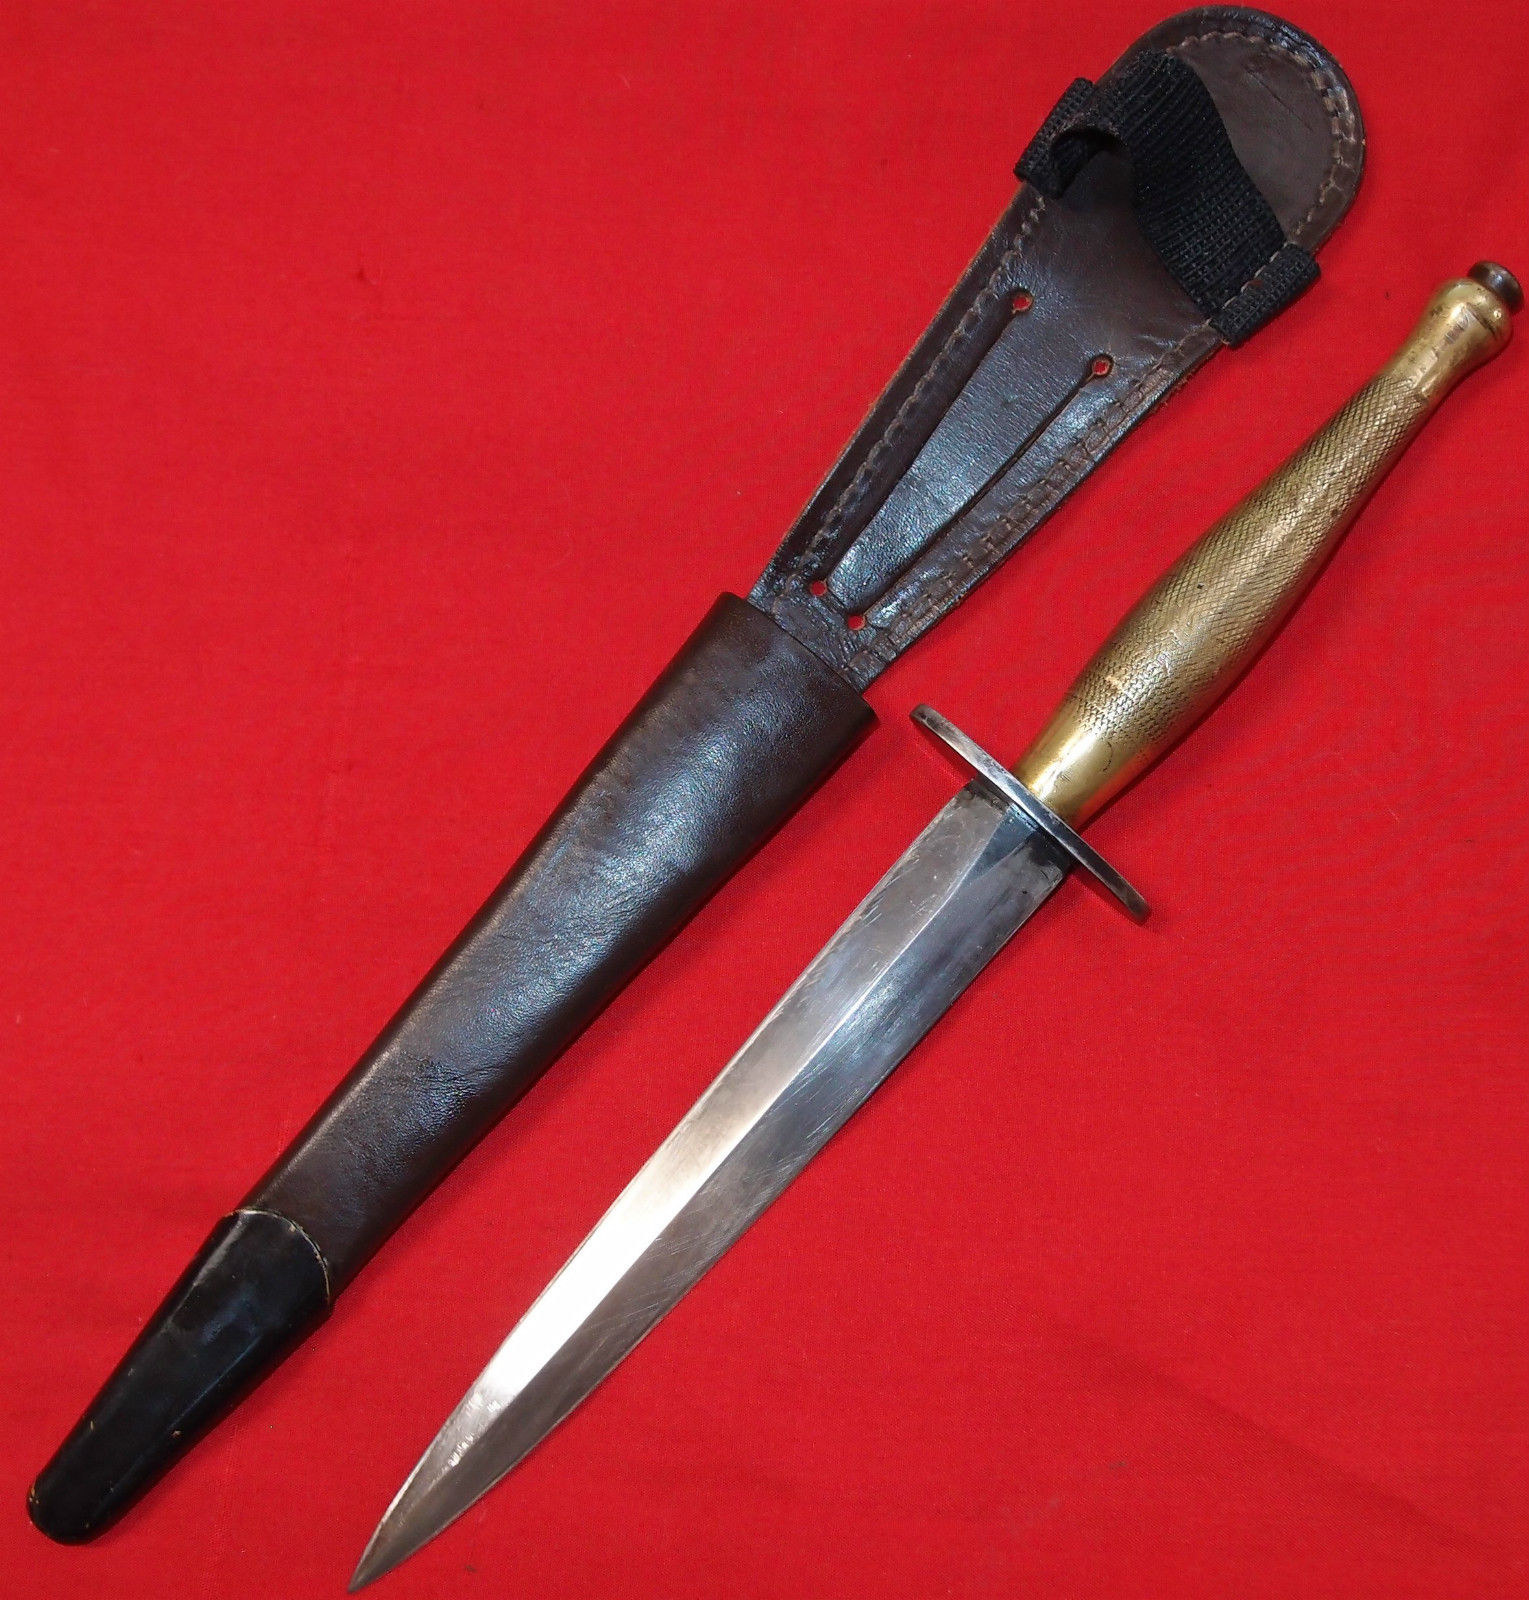 Fairbairn Sykes Fighting Knives